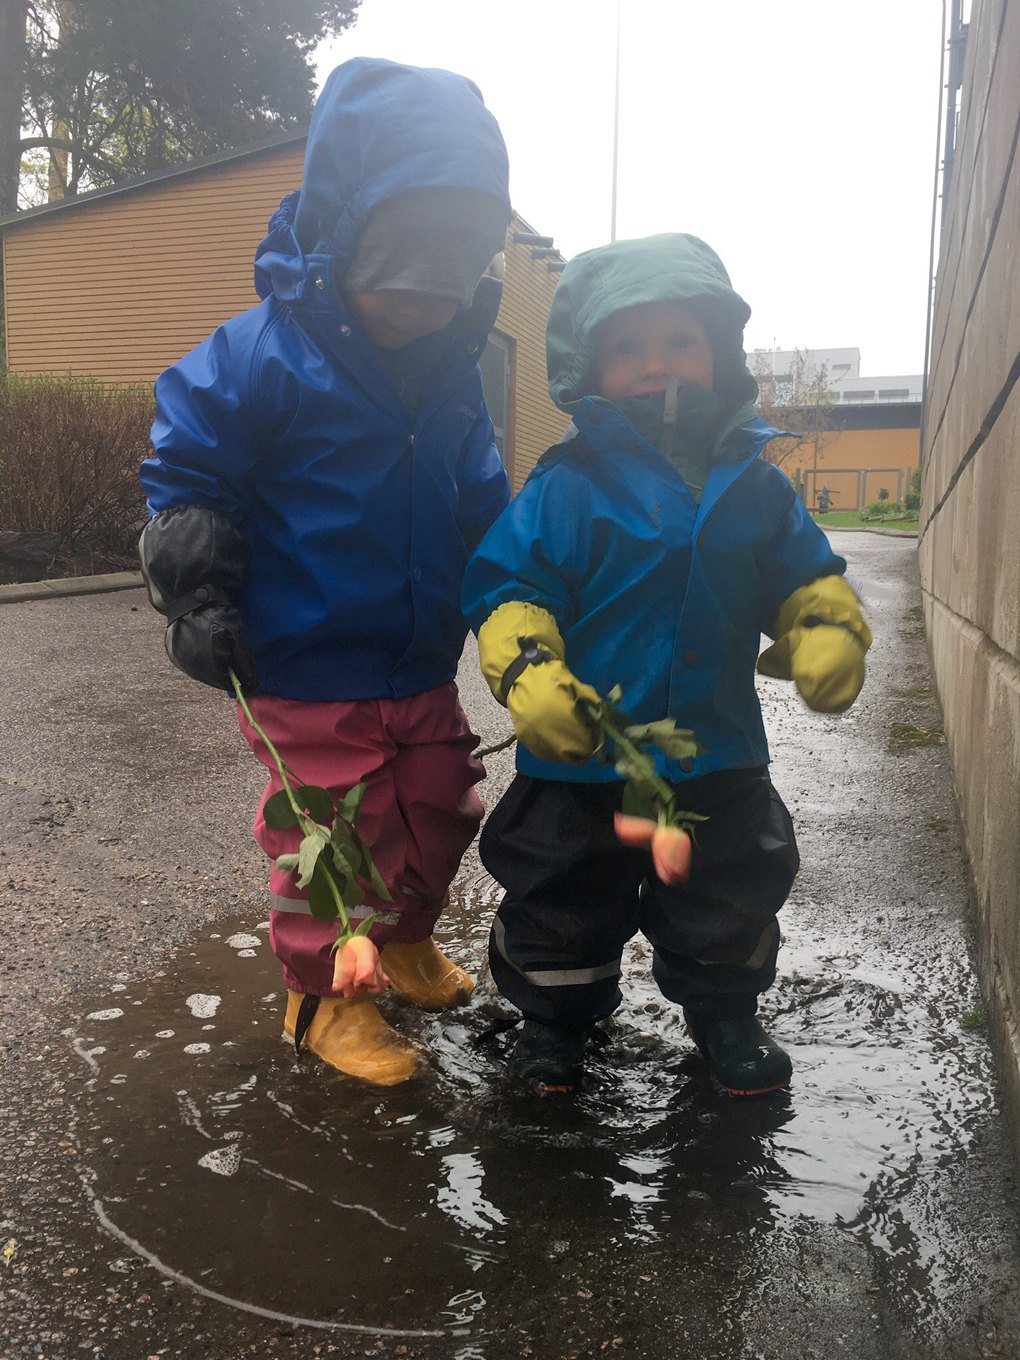 Two boys standing in a puddle holding roses.